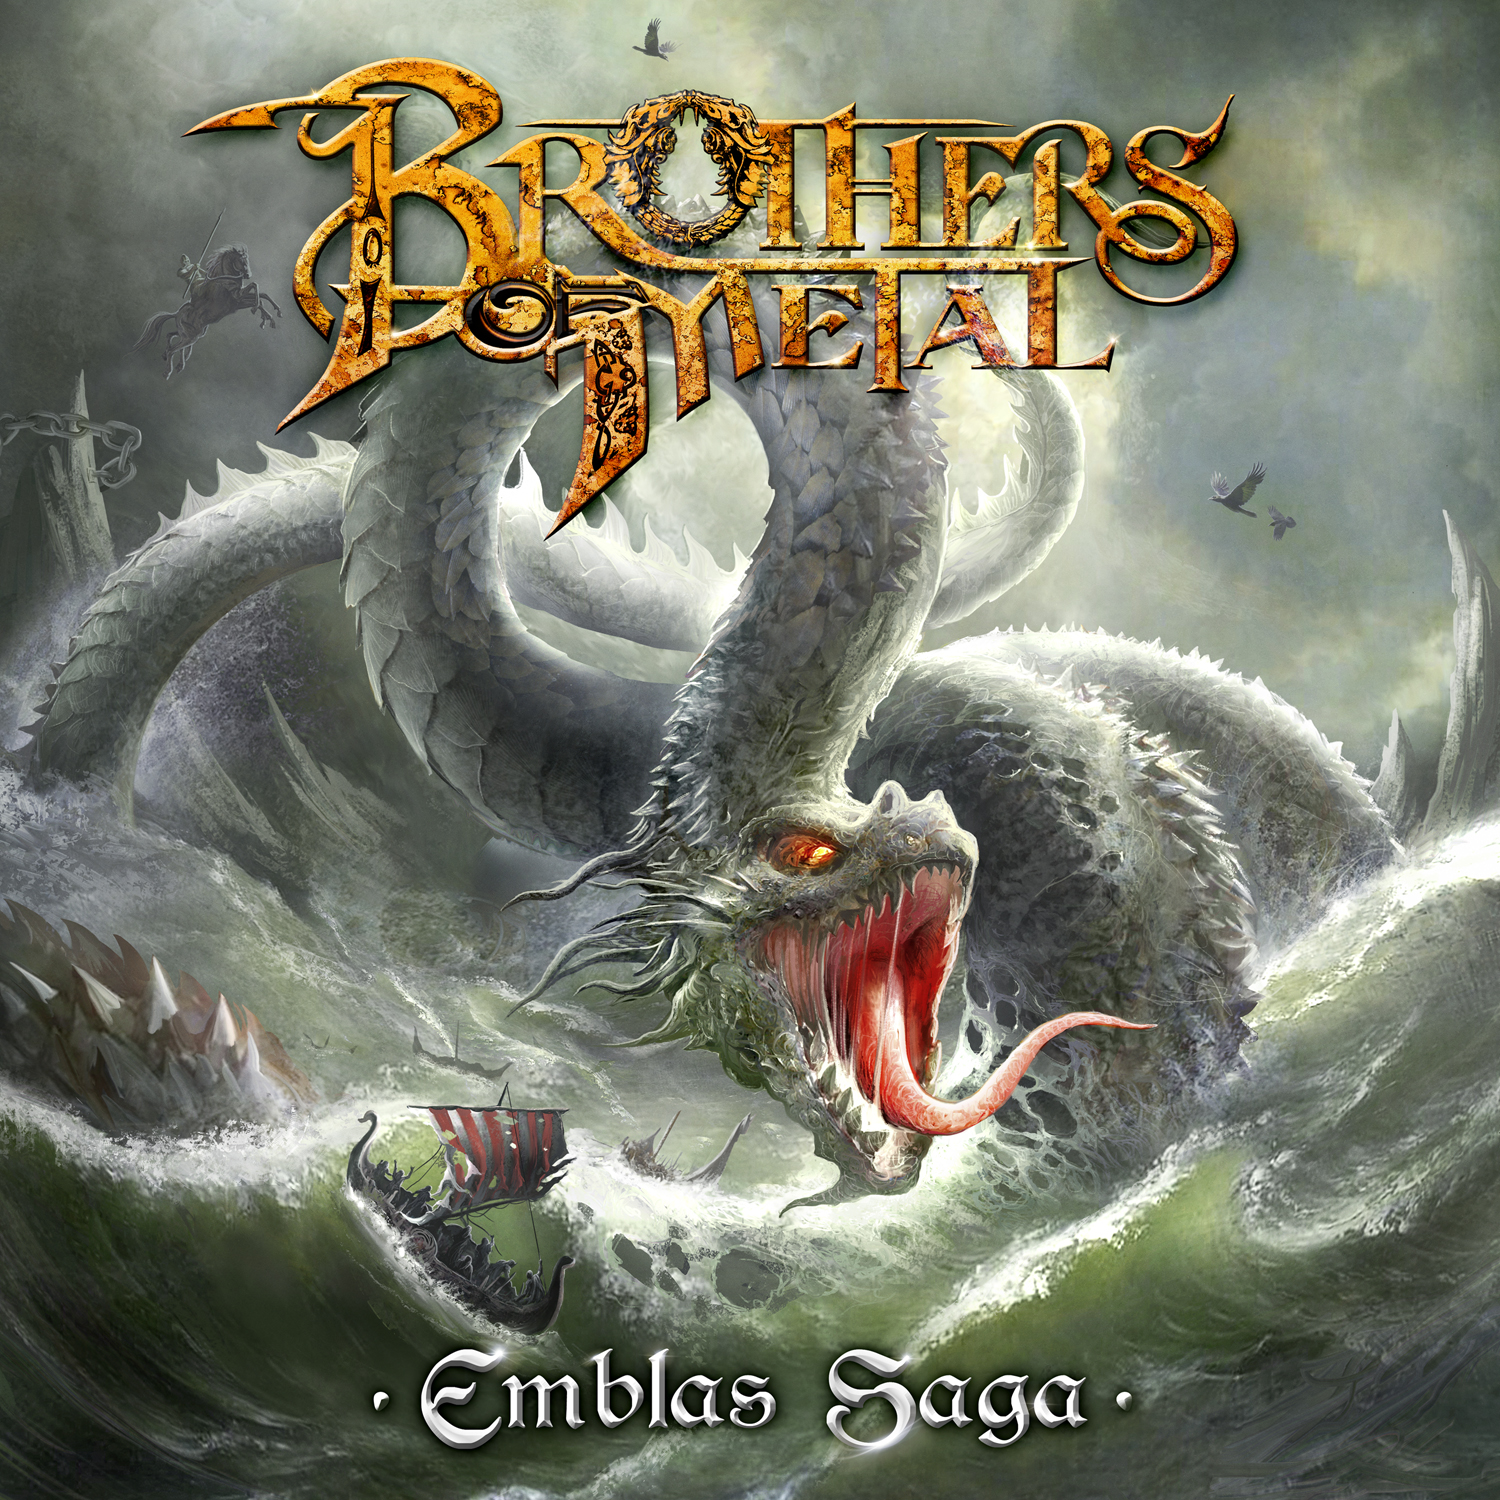 Brothers Of Metal hbls